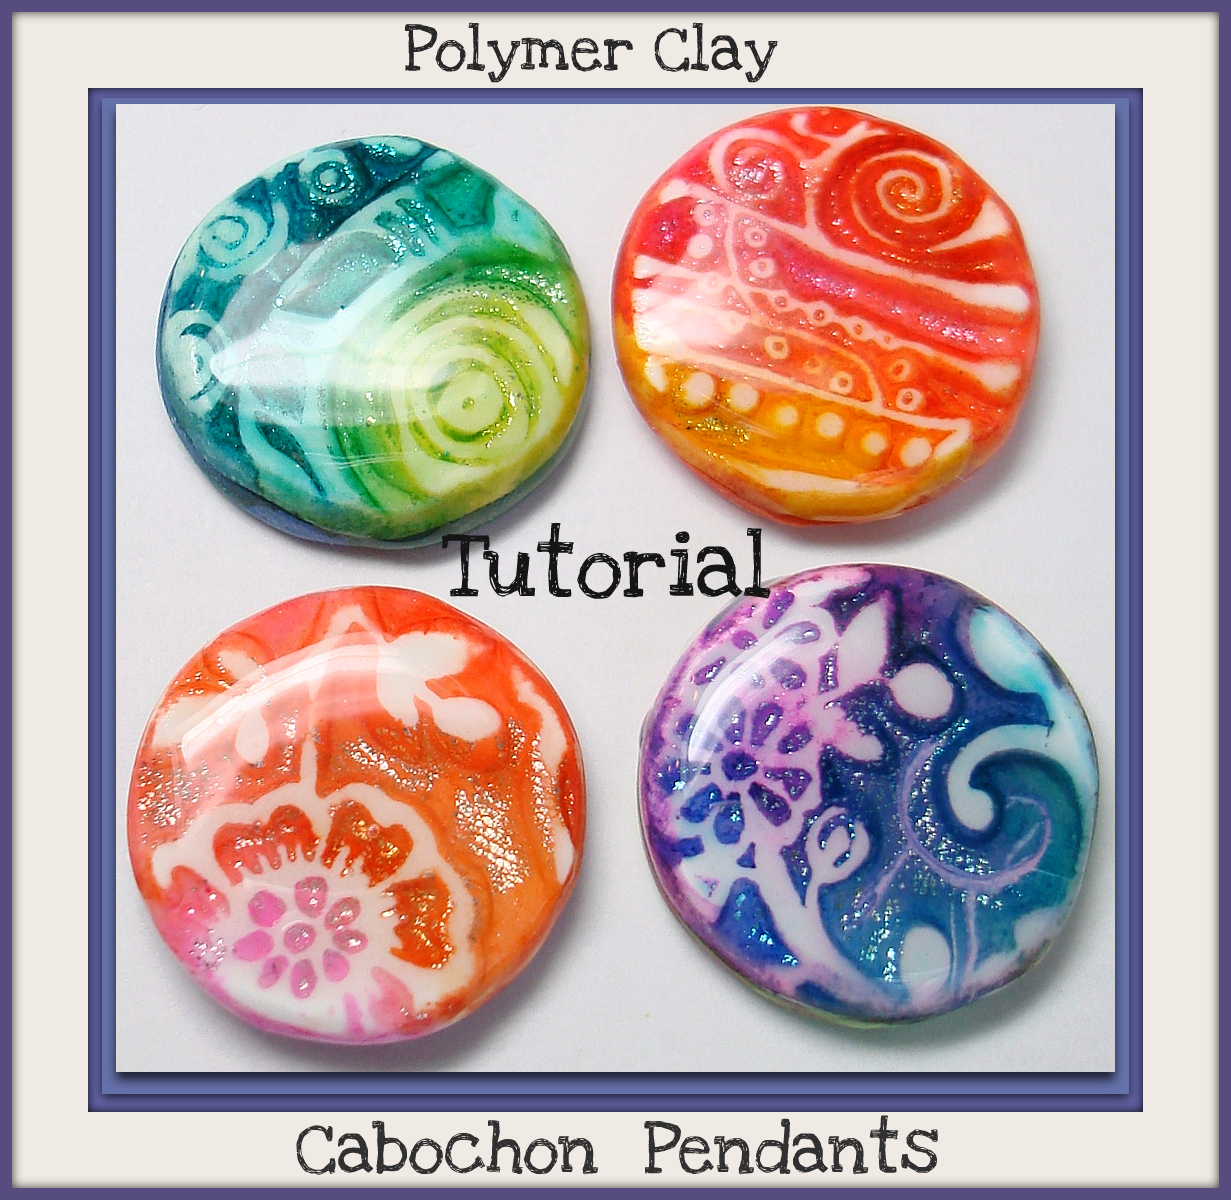 Polymer Clay Tutorials 2015 Personal Blog